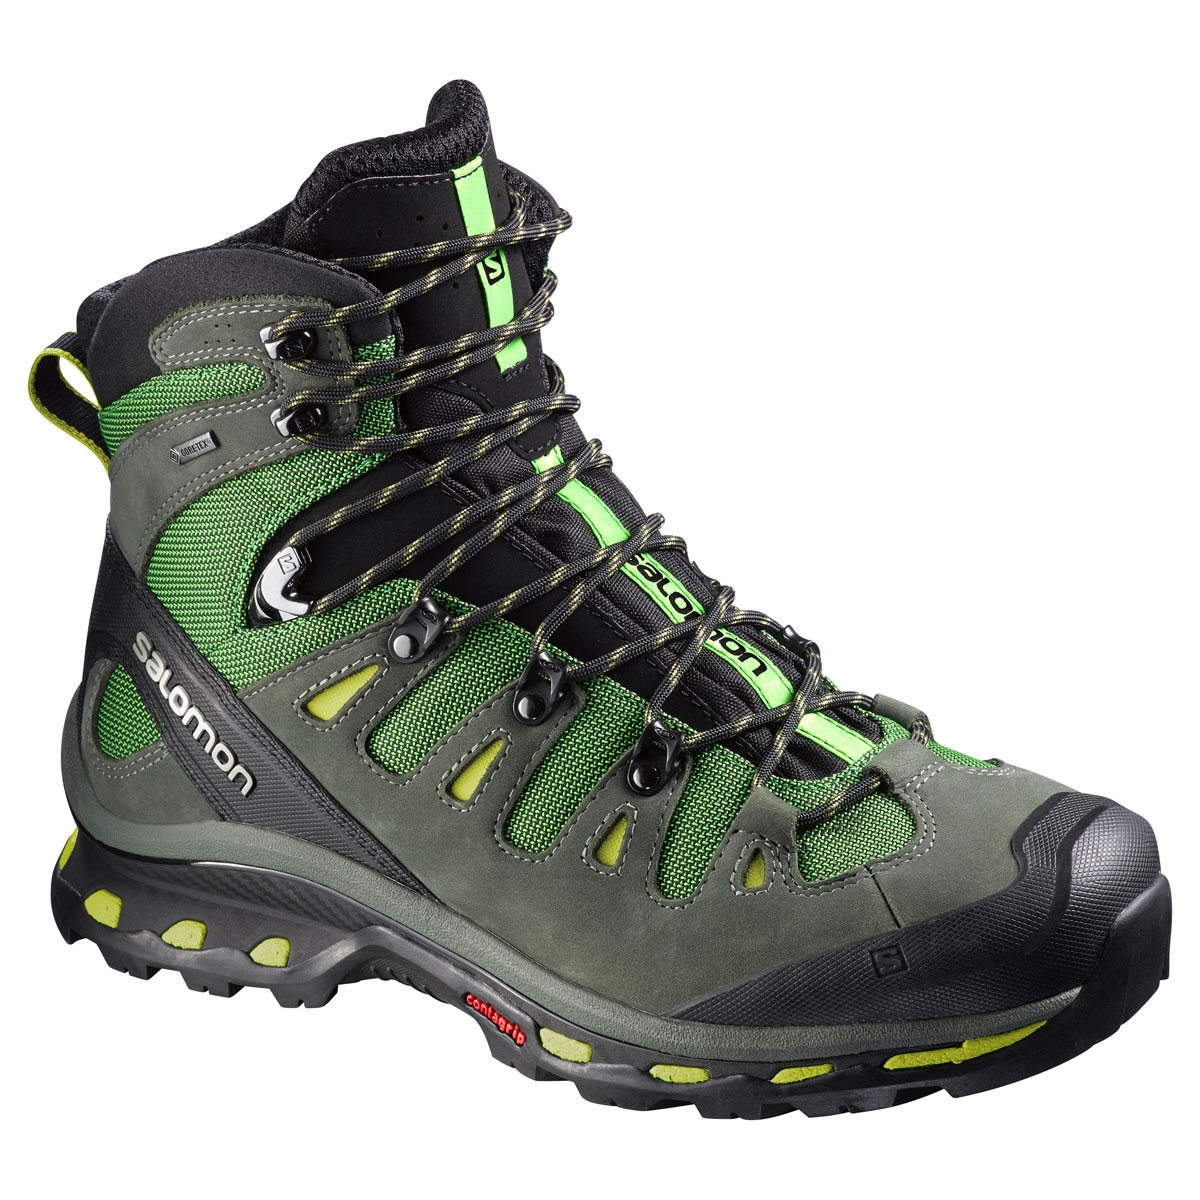 c5a1b06095ad Salomon Quest 4D 2 GTX Walking Boots (Men s) - Tonic Green   Night ...